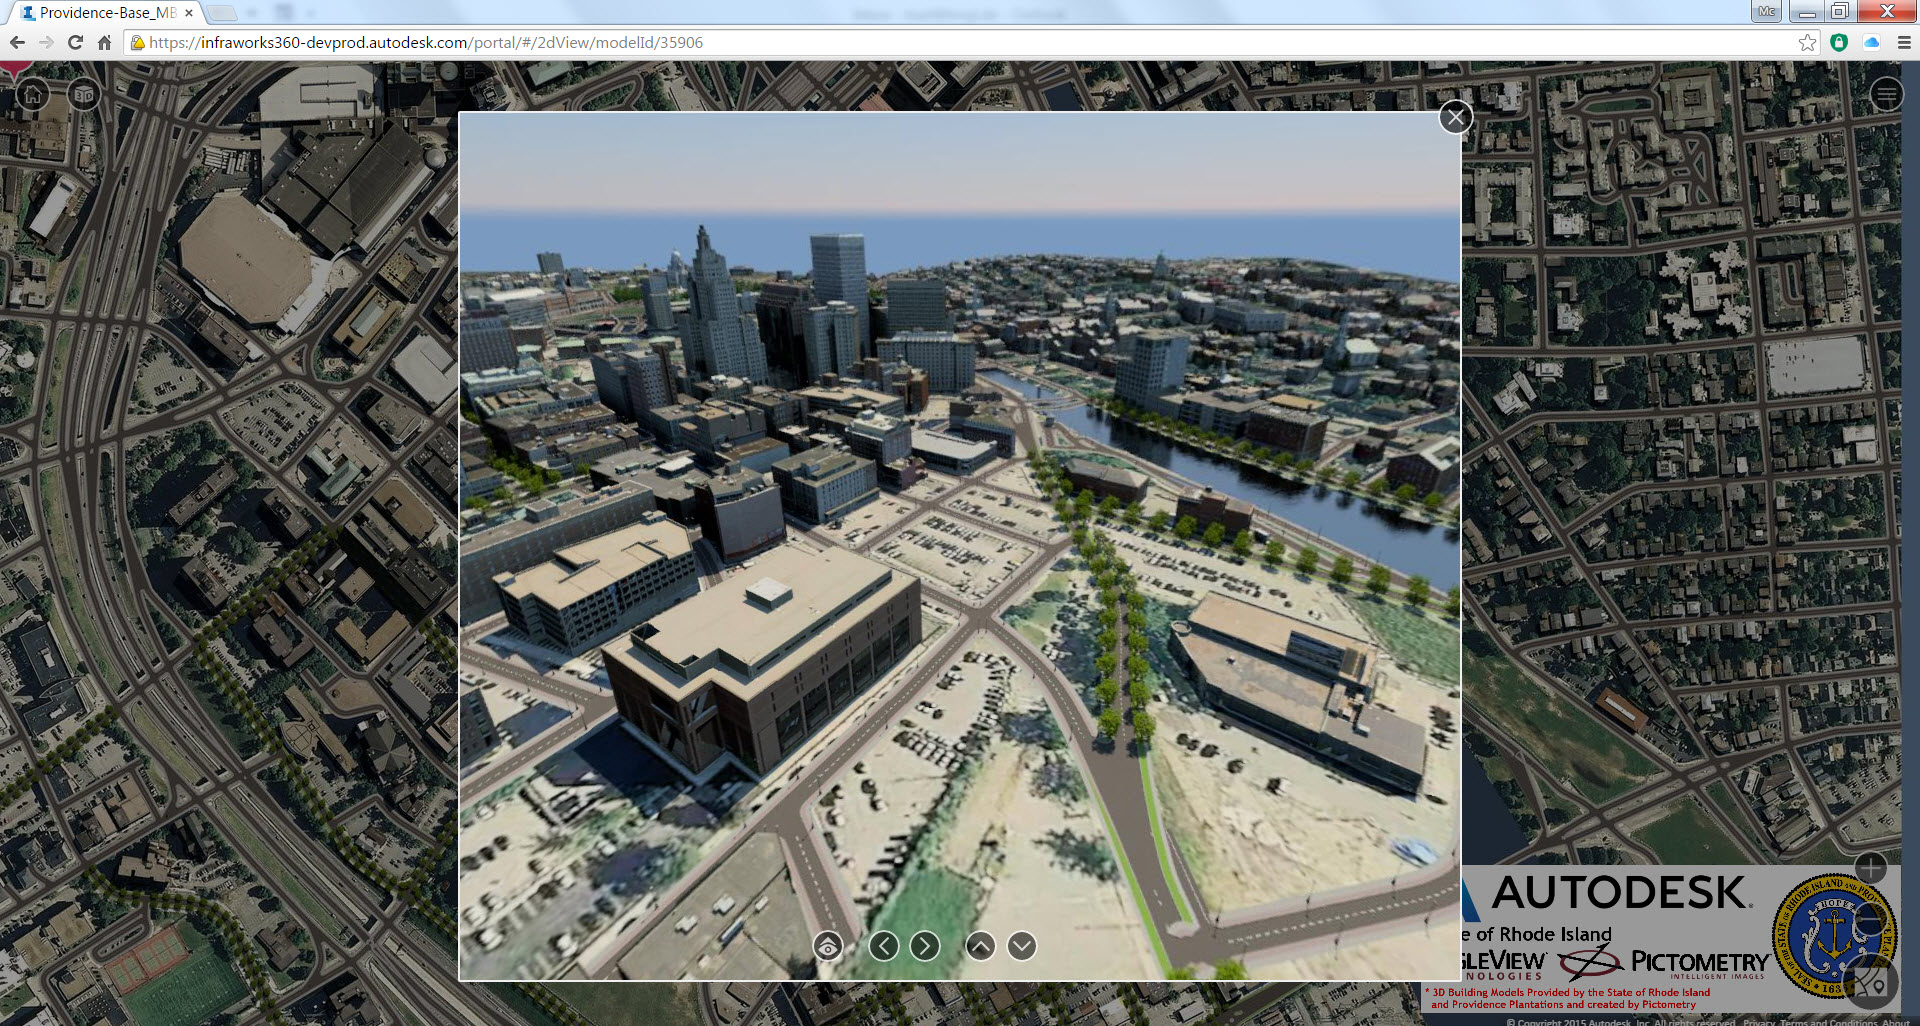 Infraworks-360-web-providence-2-3500-3500